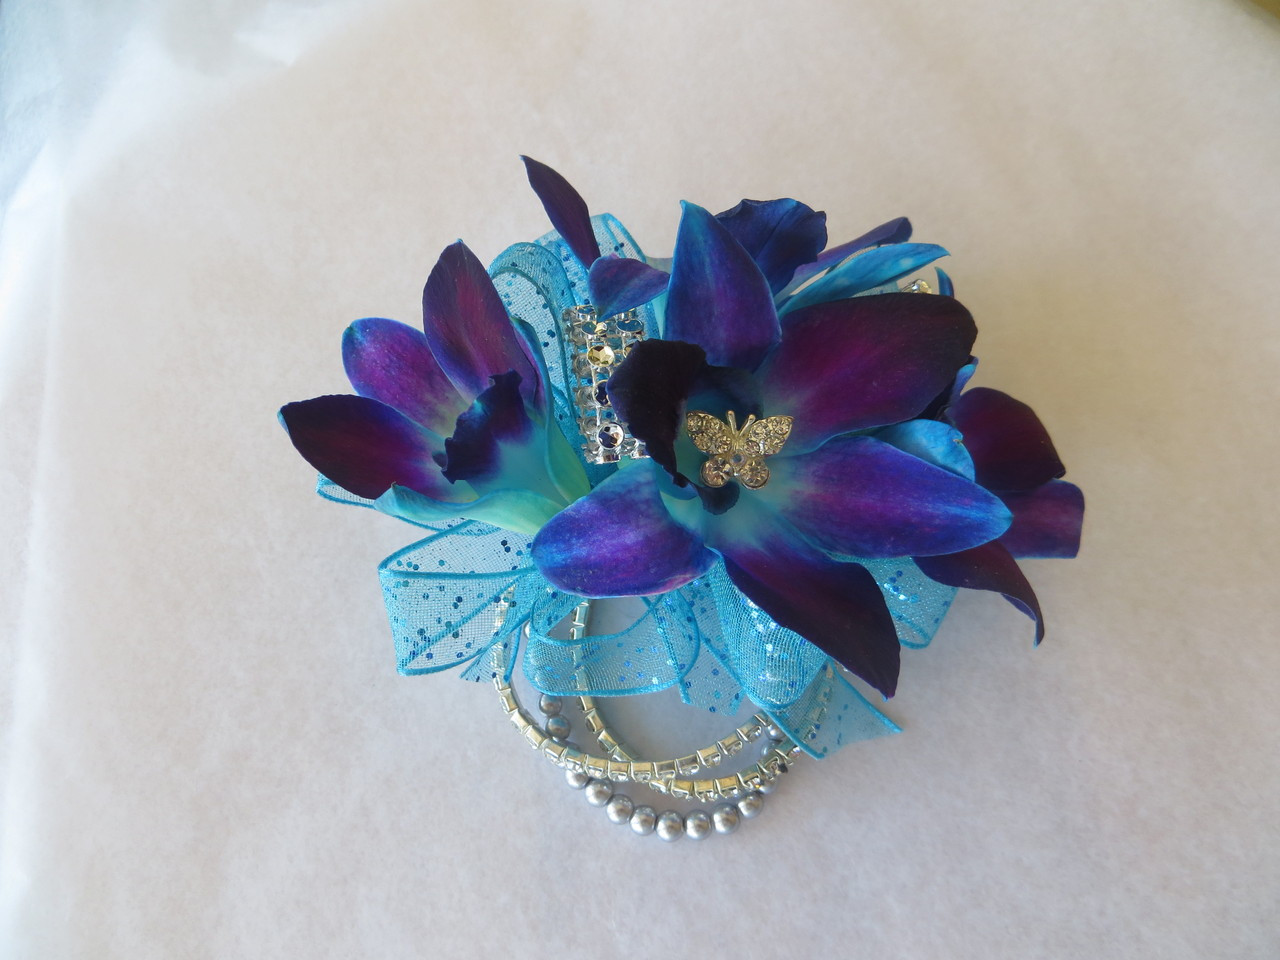 Blue orchid prom corsage prom flowers pasadena tx blue orchid corsage prom flowers by enchanted florist pasadena tx prom105 izmirmasajfo Gallery